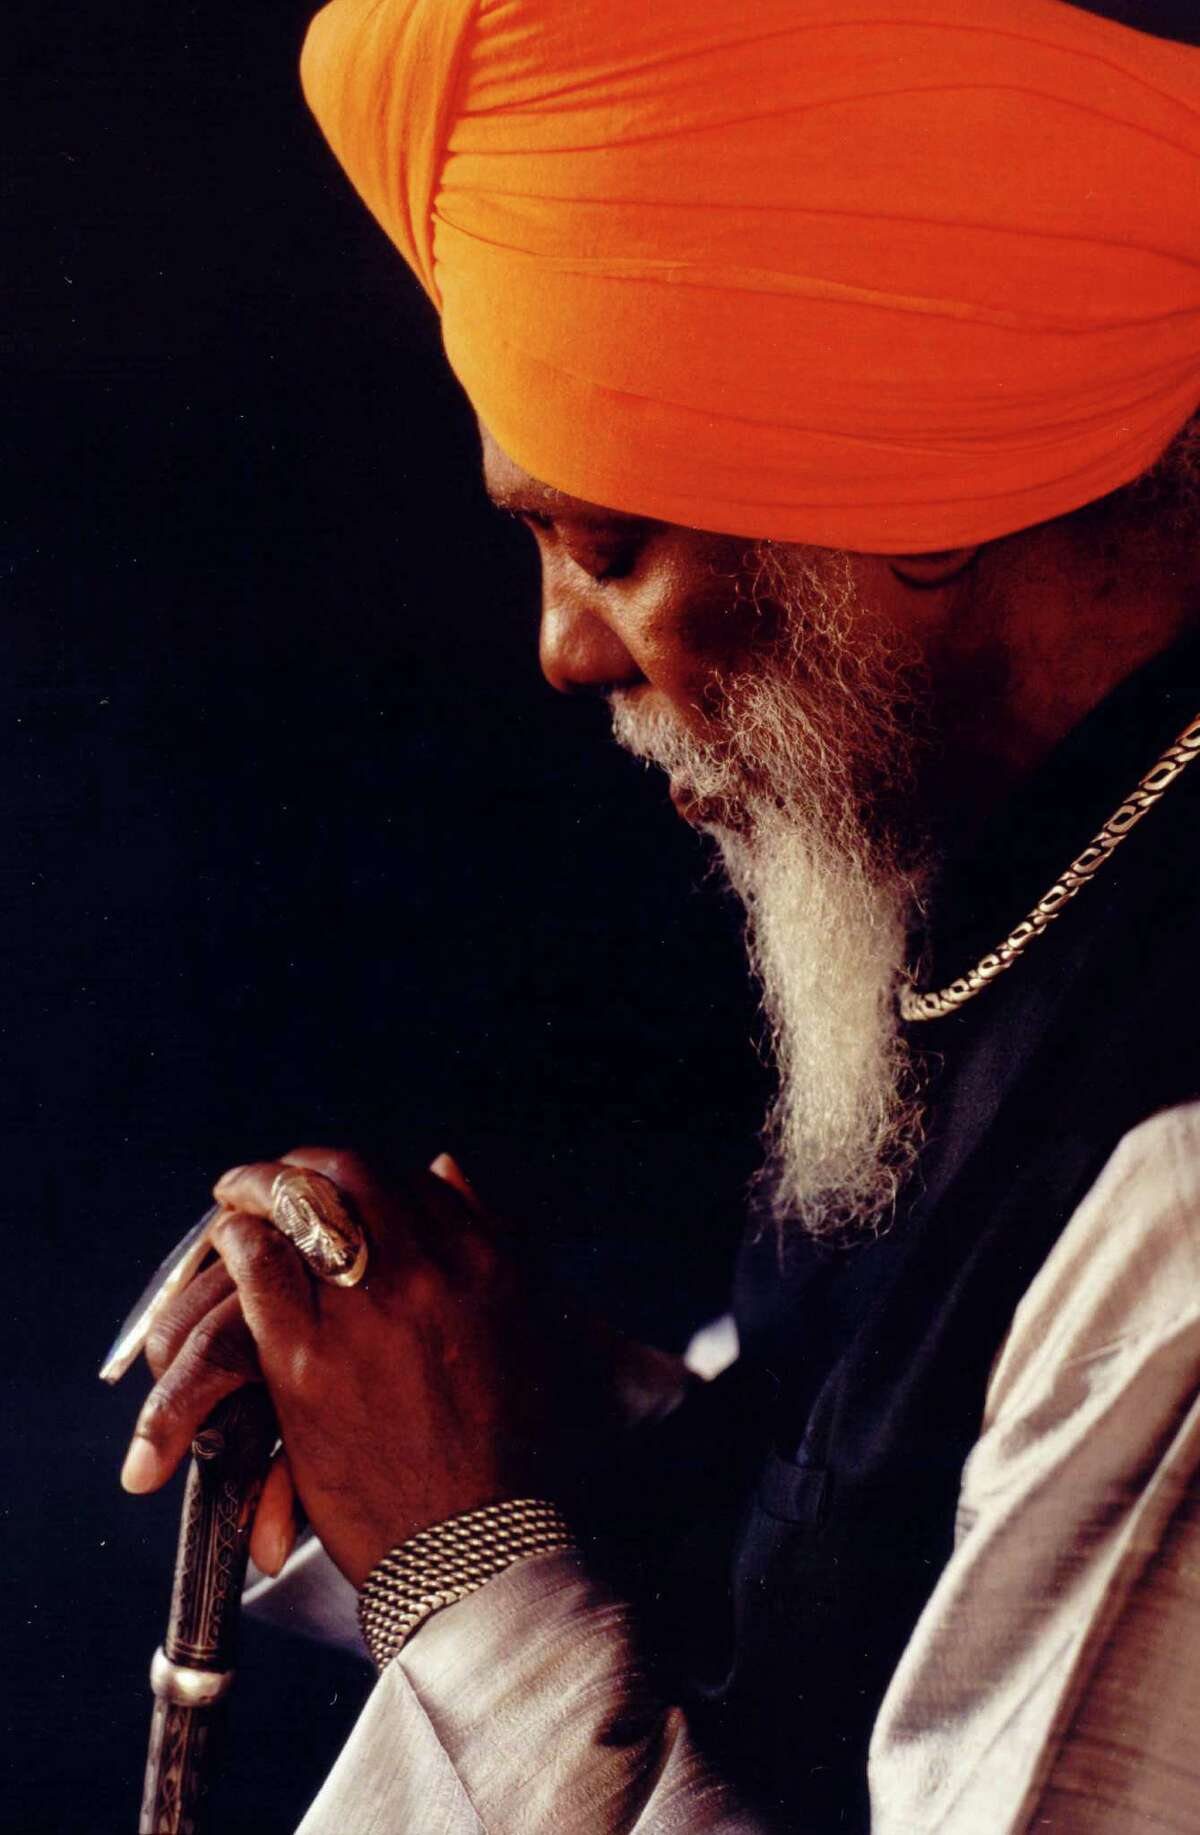 """Dr. Lonnie Smith is a Hammond B-3 virtuoso. """"When I'm at the organ, it's like sitting in a spaceship and you don't know where you're going,"""" he said."""